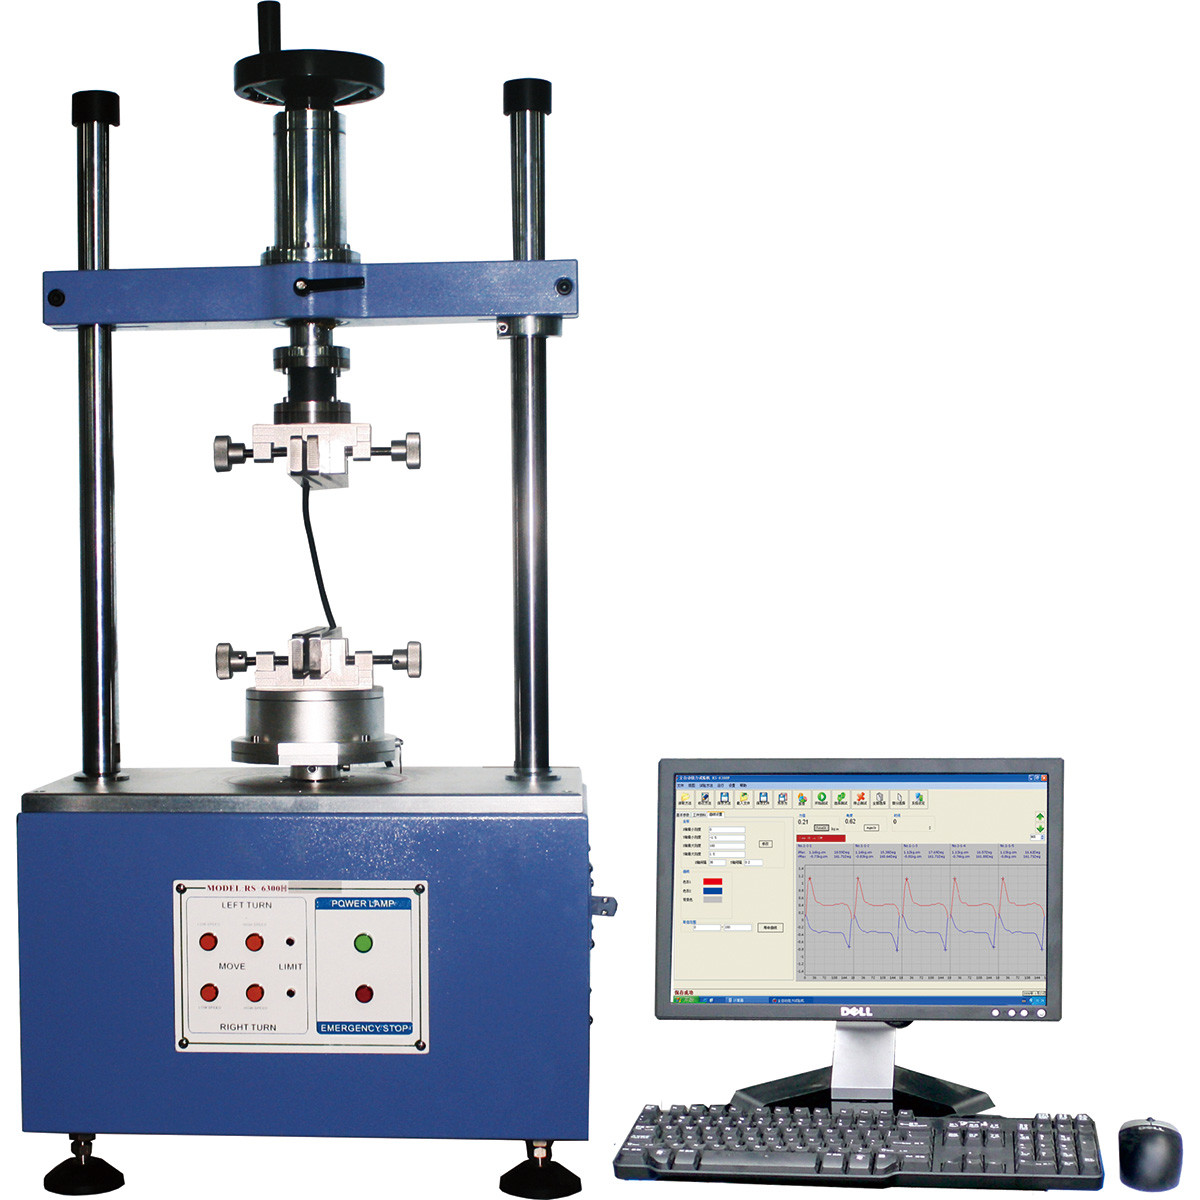 Professional Knob Torsion Testing Machine Digital Display 2N.m / 5N.m